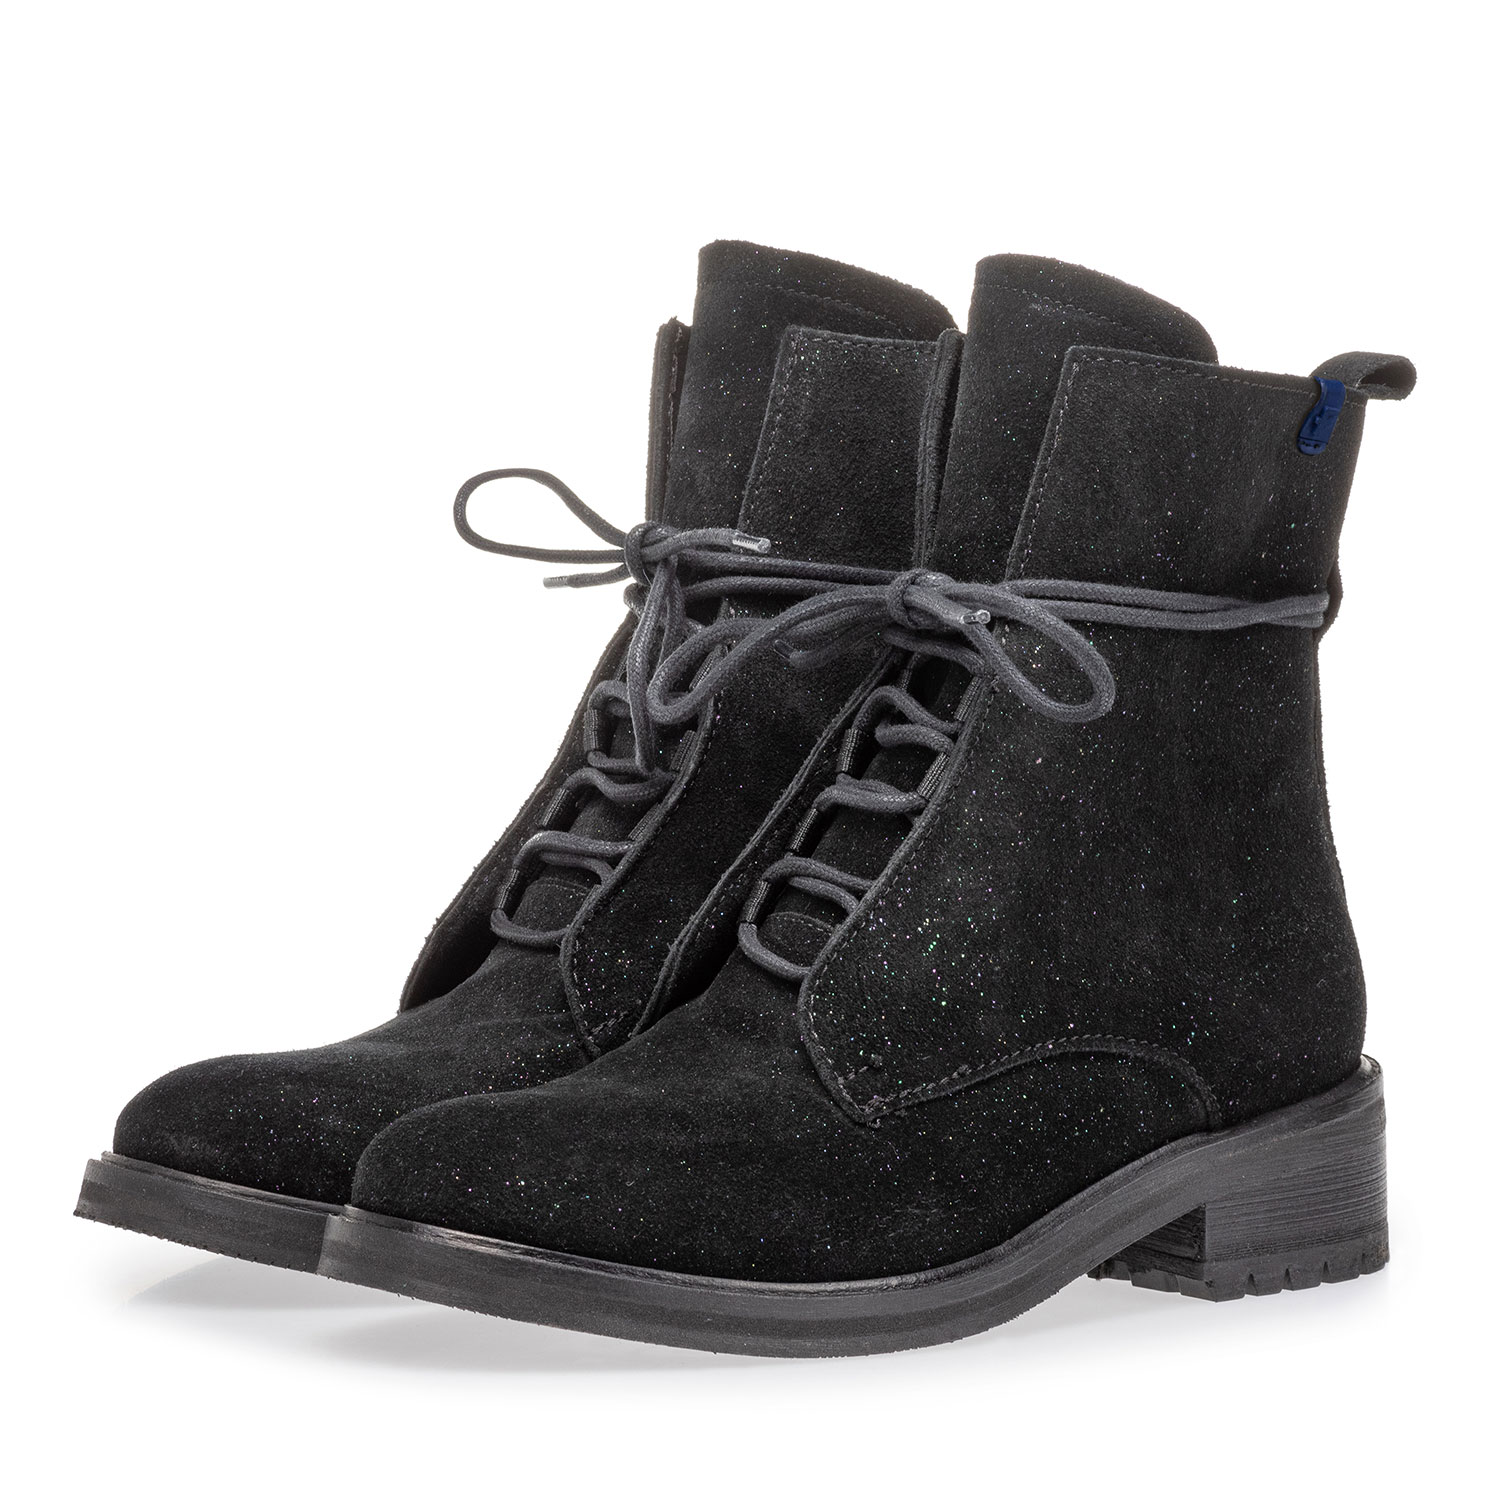 85647/00 - Lace boot black suede leather